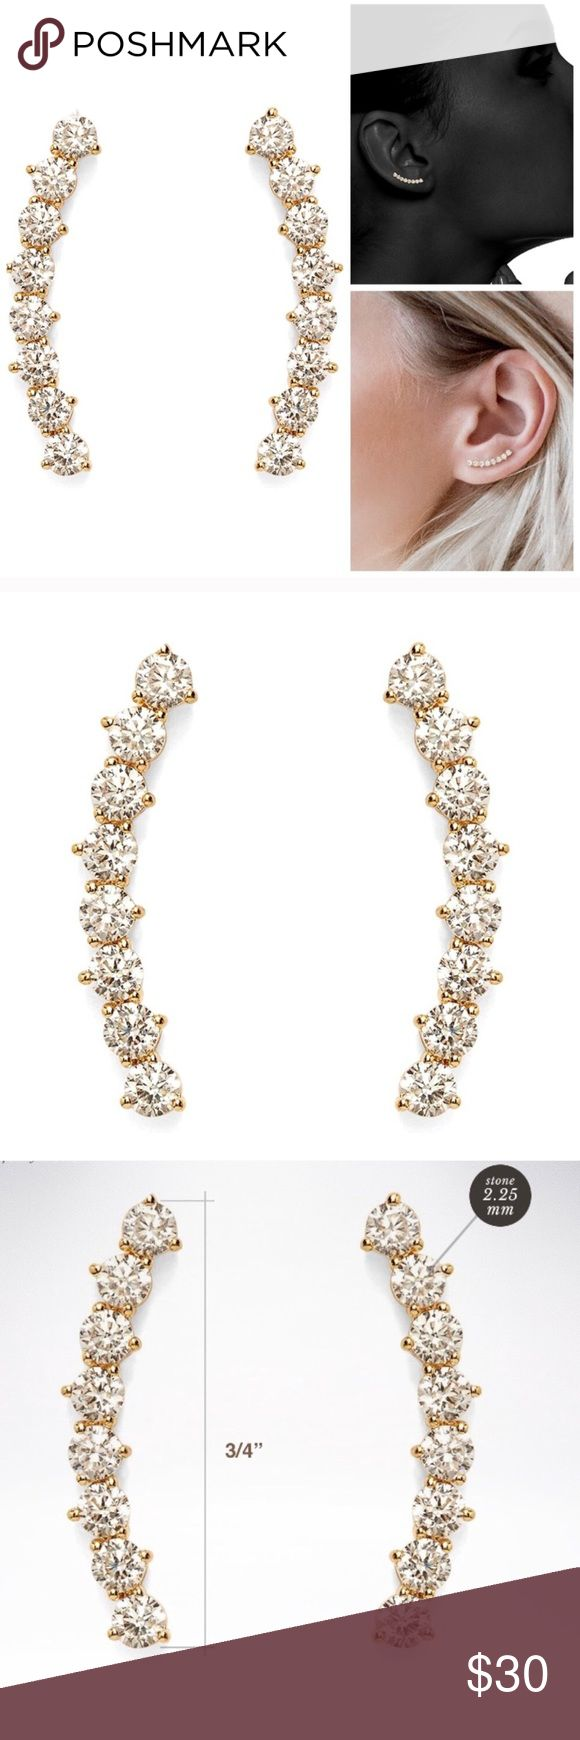 """Gold Diamond Ear Crawler Earrings Earrings are 19mm (3:4"""") in length Curved Stud Bar Earring climbers are crafted in 925 Sterling Silver then Gold Plated and Hypoallergenic  *Simulated Diamond (NOT real diamond) Jewelry Earrings #diamondjewelry"""